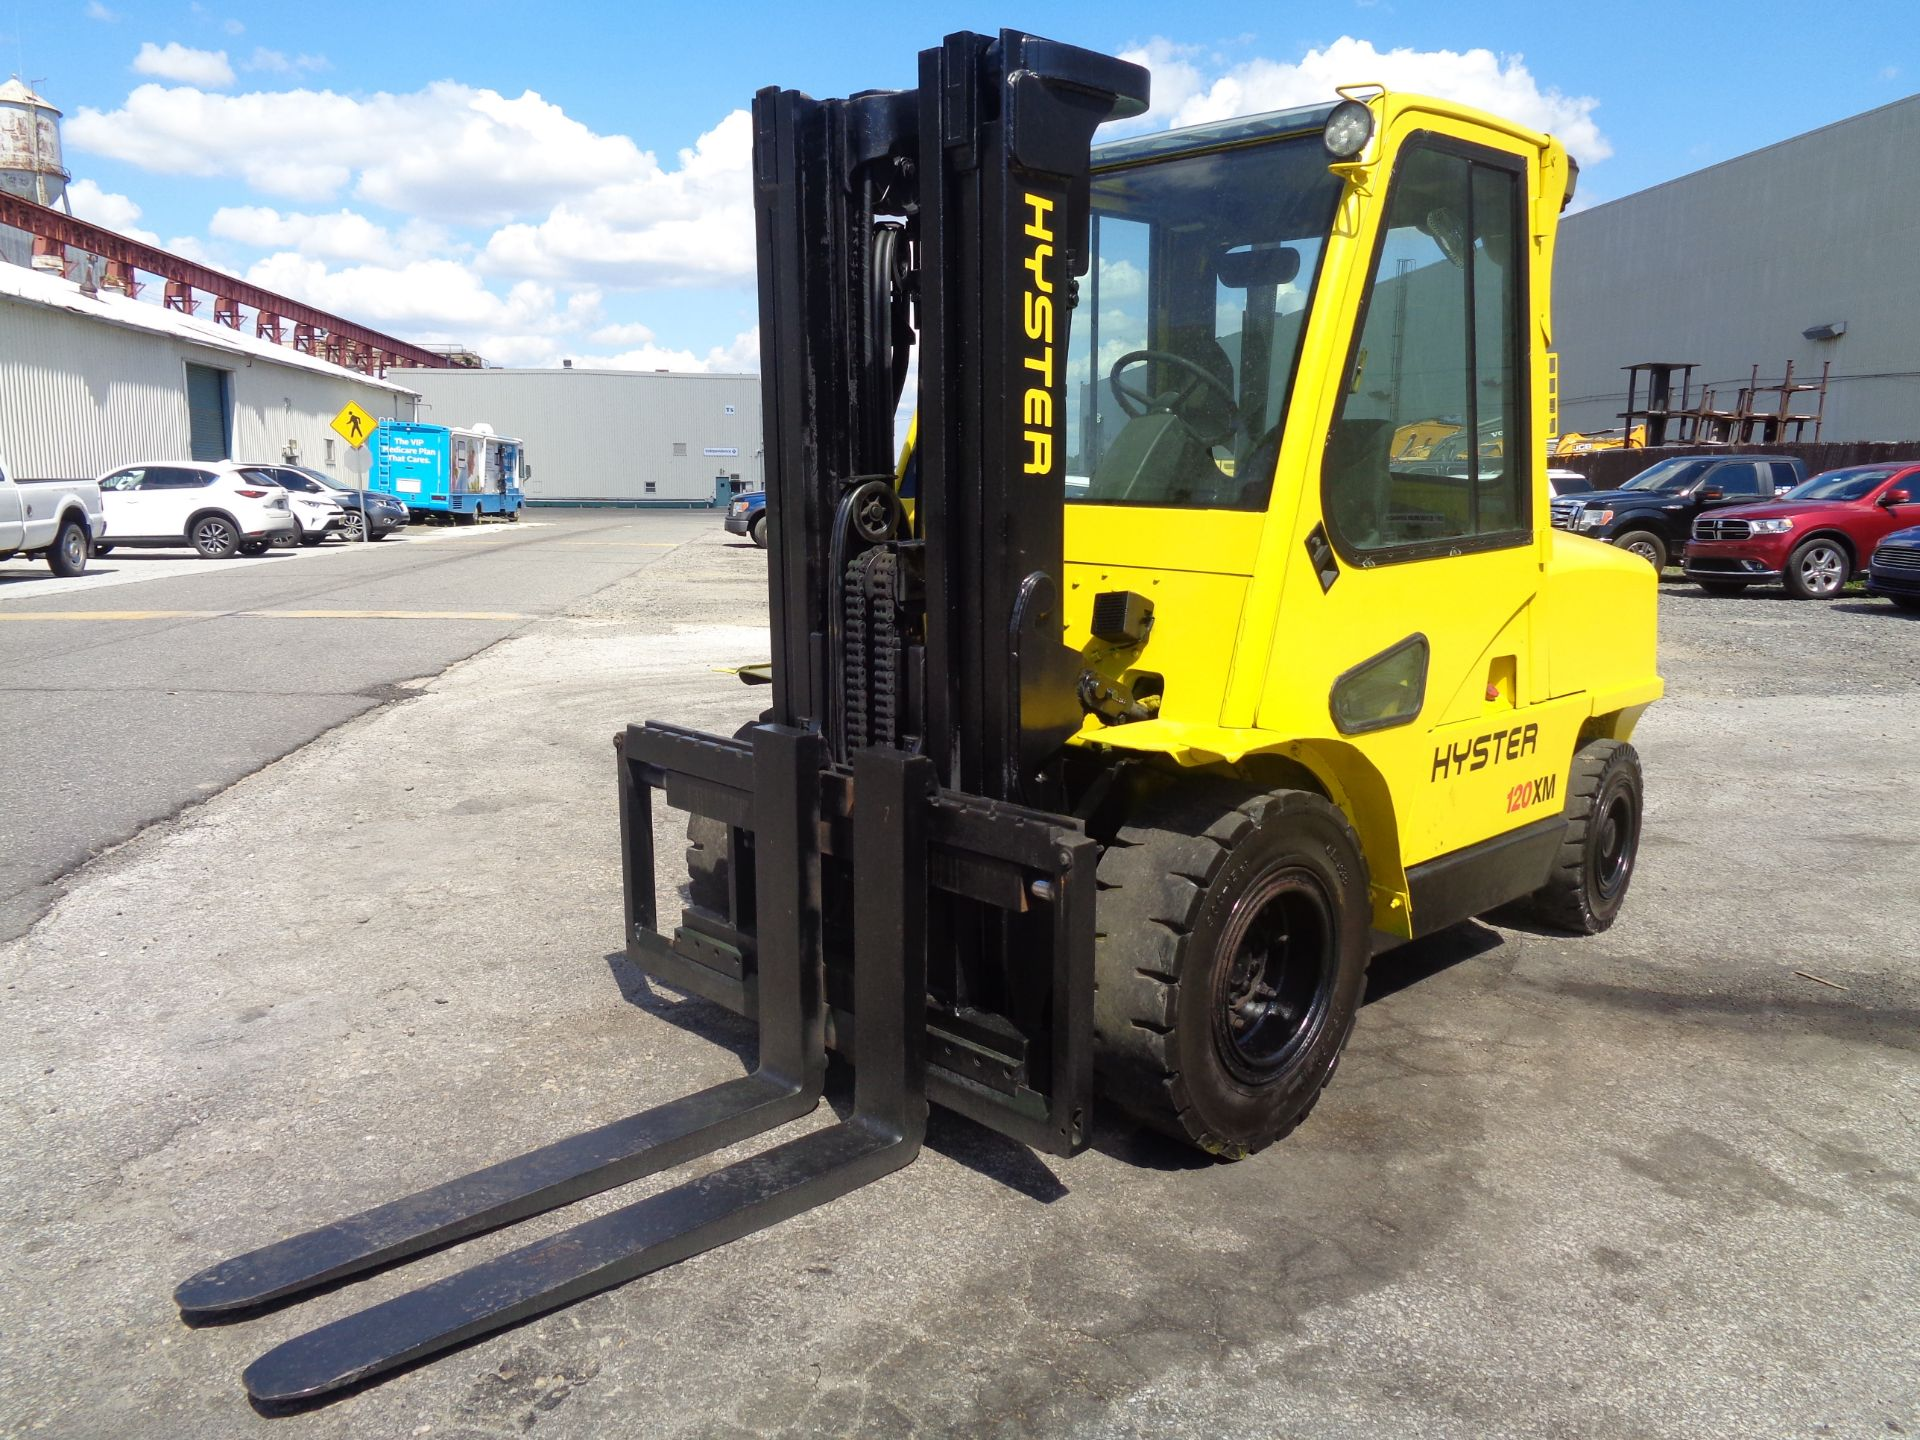 Hyster H120XL 12,000lb Forklift - Image 7 of 15